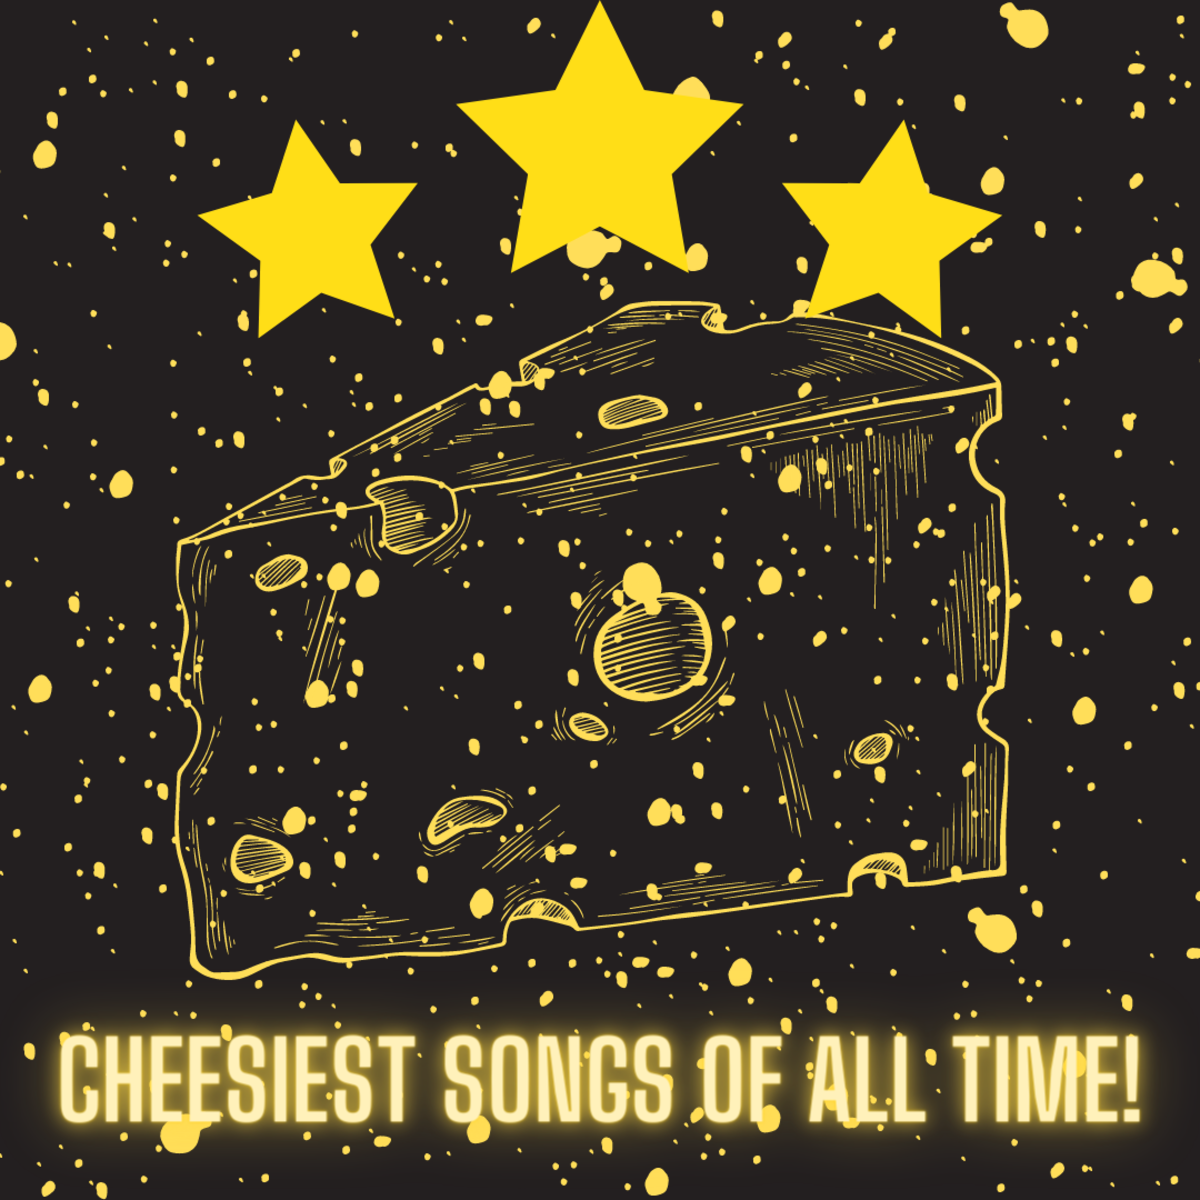 Admit it, you also like these ridiculously cheesy songs!